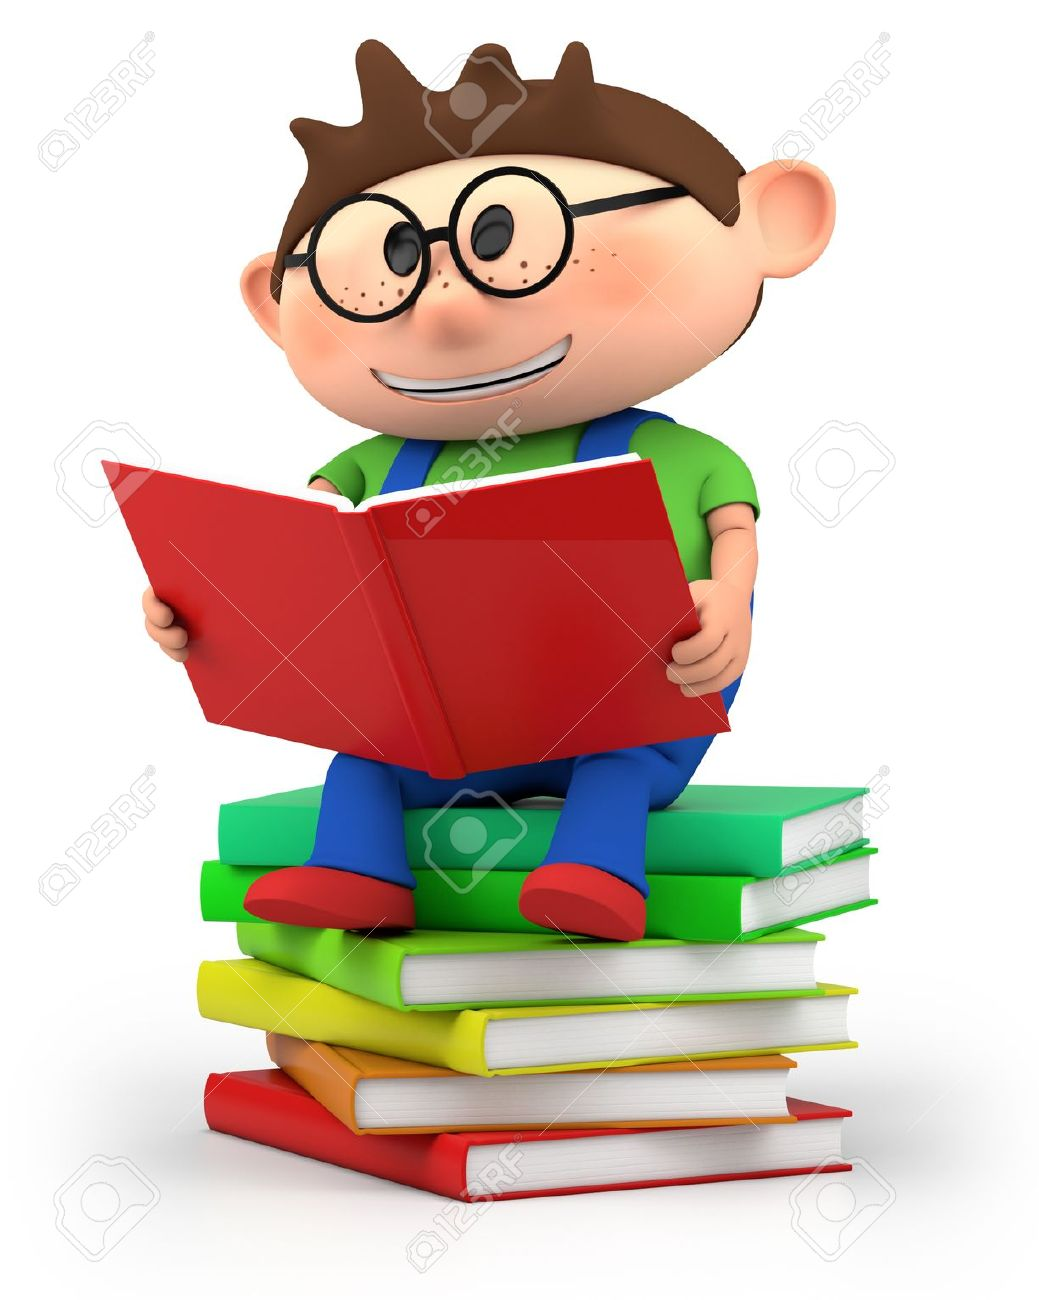 Clipart guy reading on a pile of books clip royalty free library Cartoon Boy Reading Book Group with 38+ items clip royalty free library